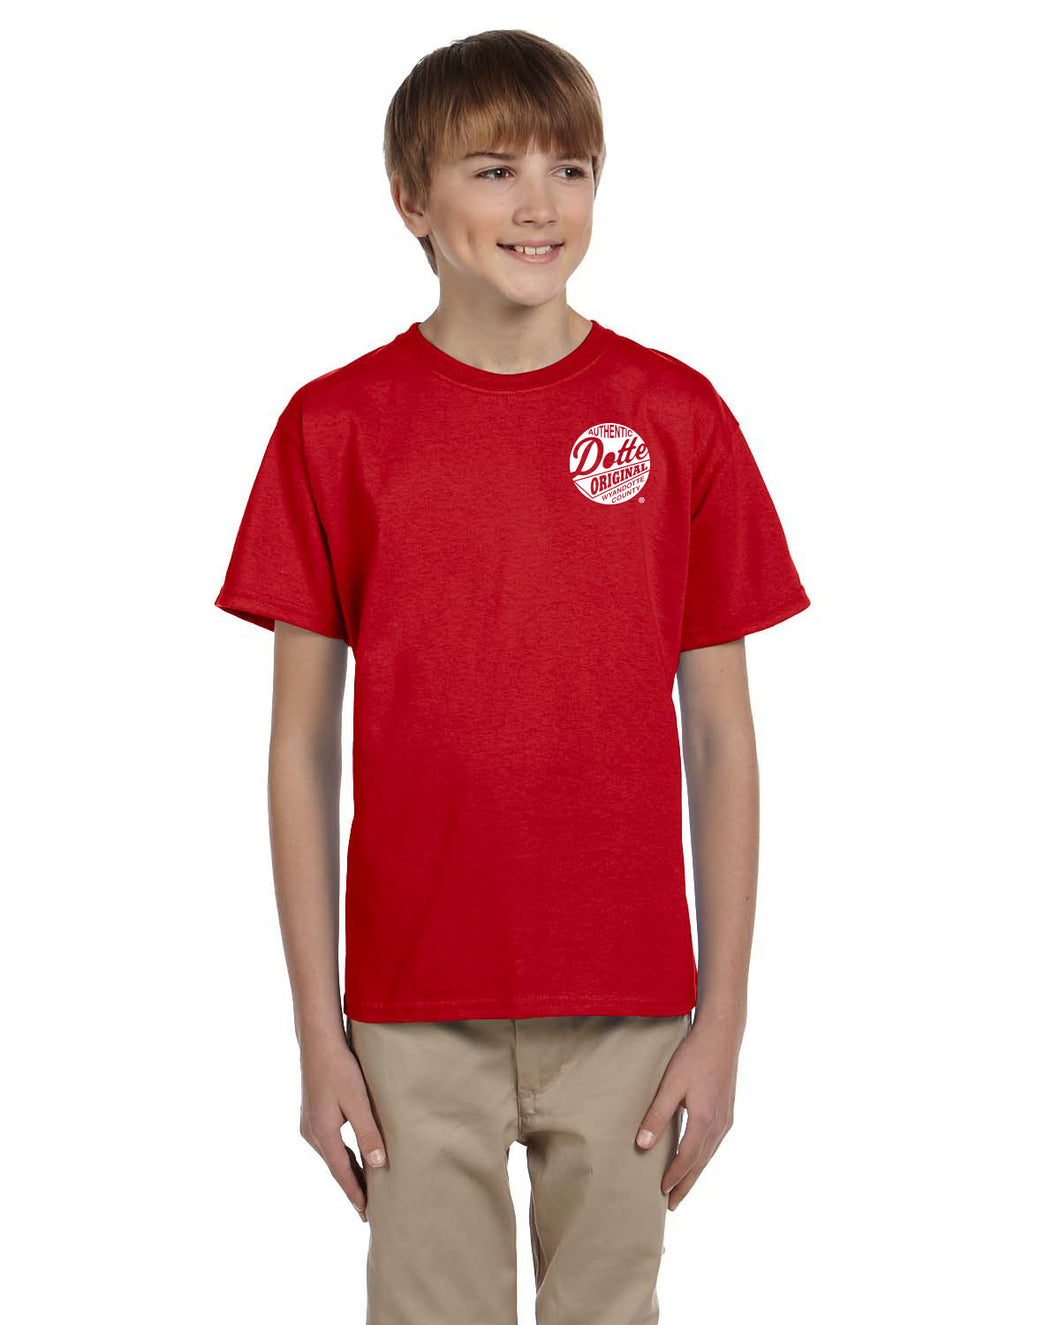 Youth Red Dotte Shirt